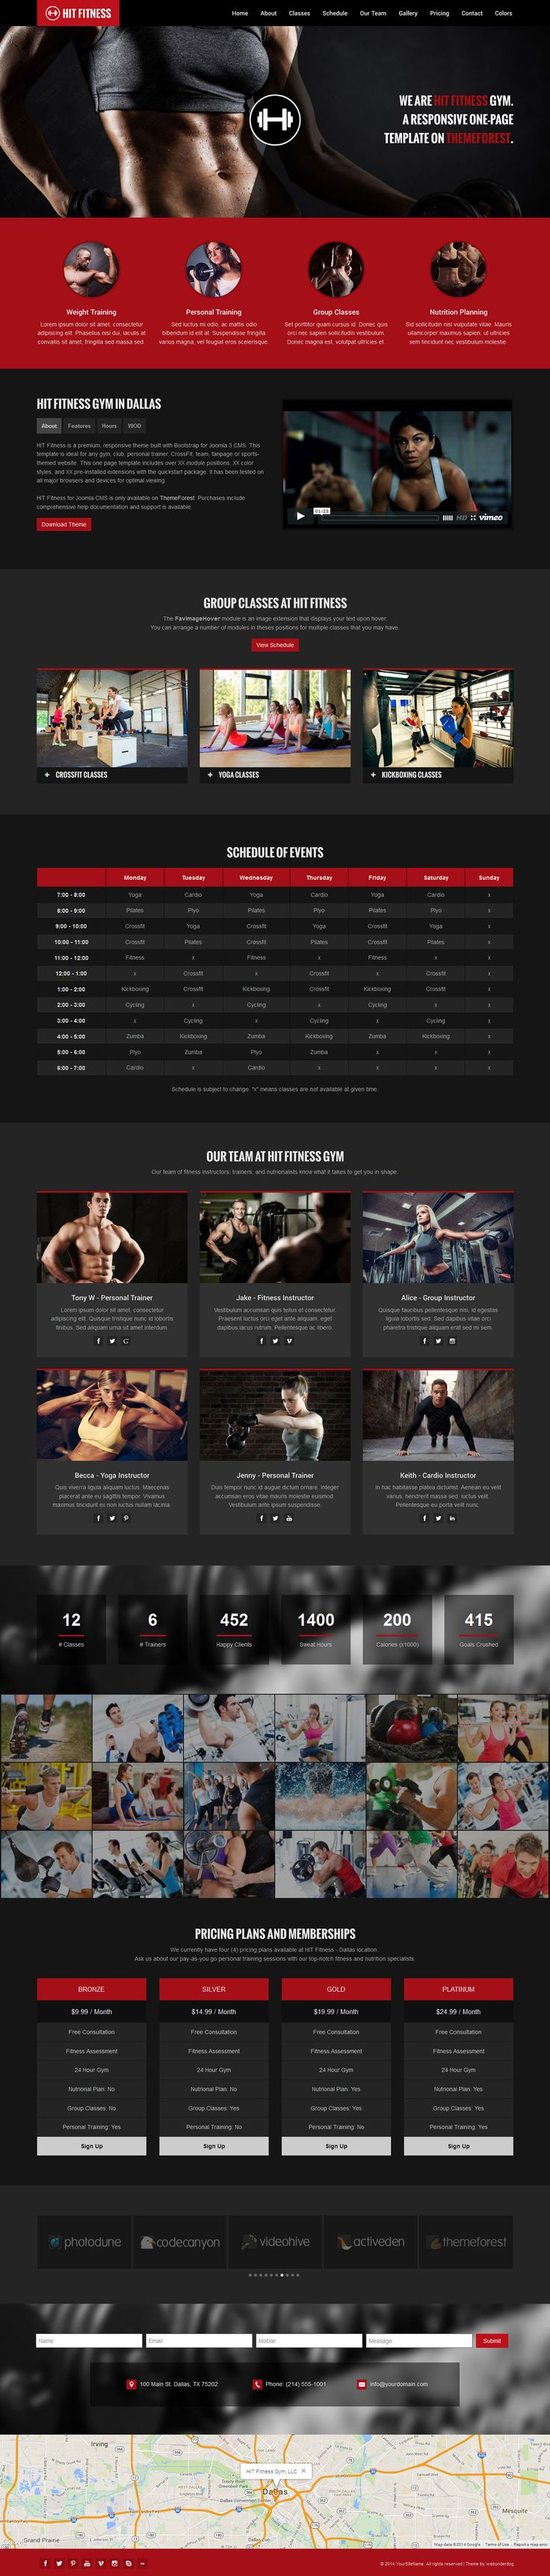 HIT Fitness & Gym One Page Joomla Theme available on ThemeForest. #webdesign #inspiration #responsive #gym #crossfit #mma #workout #exercise #personaltrainer